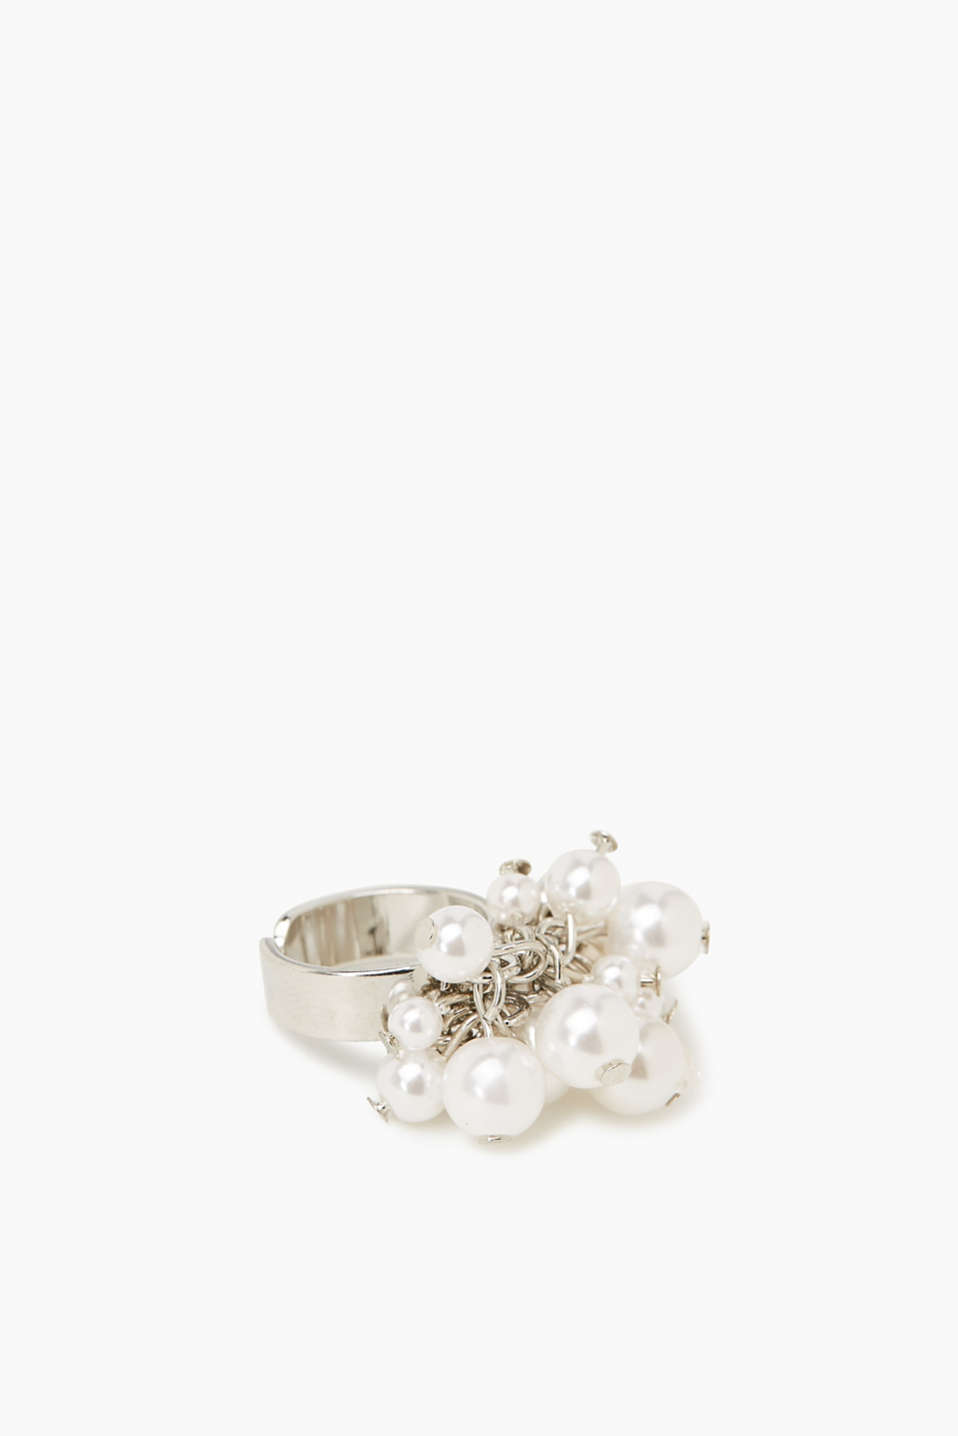 Ring with pearls and facet-cut stones